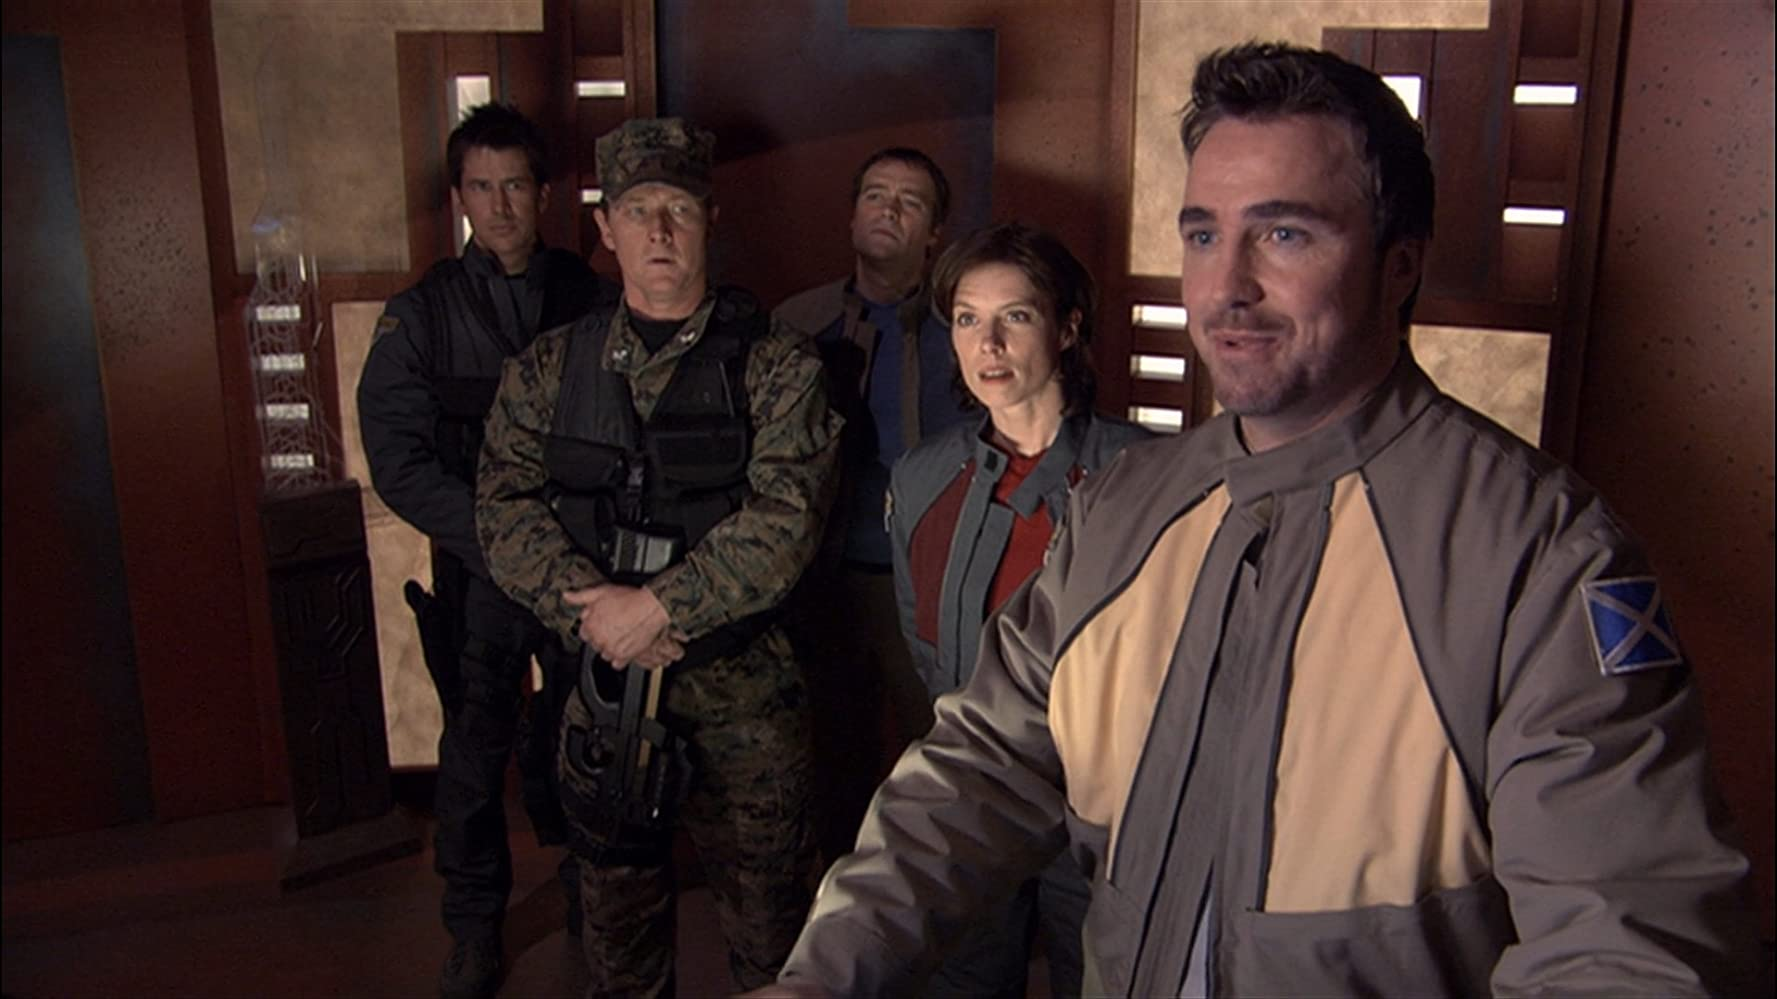 Robert Patrick, Joe Flanigan, David Hewlett, Torri Higginson, and Paul McGillion in Stargate: Atlantis (2004)